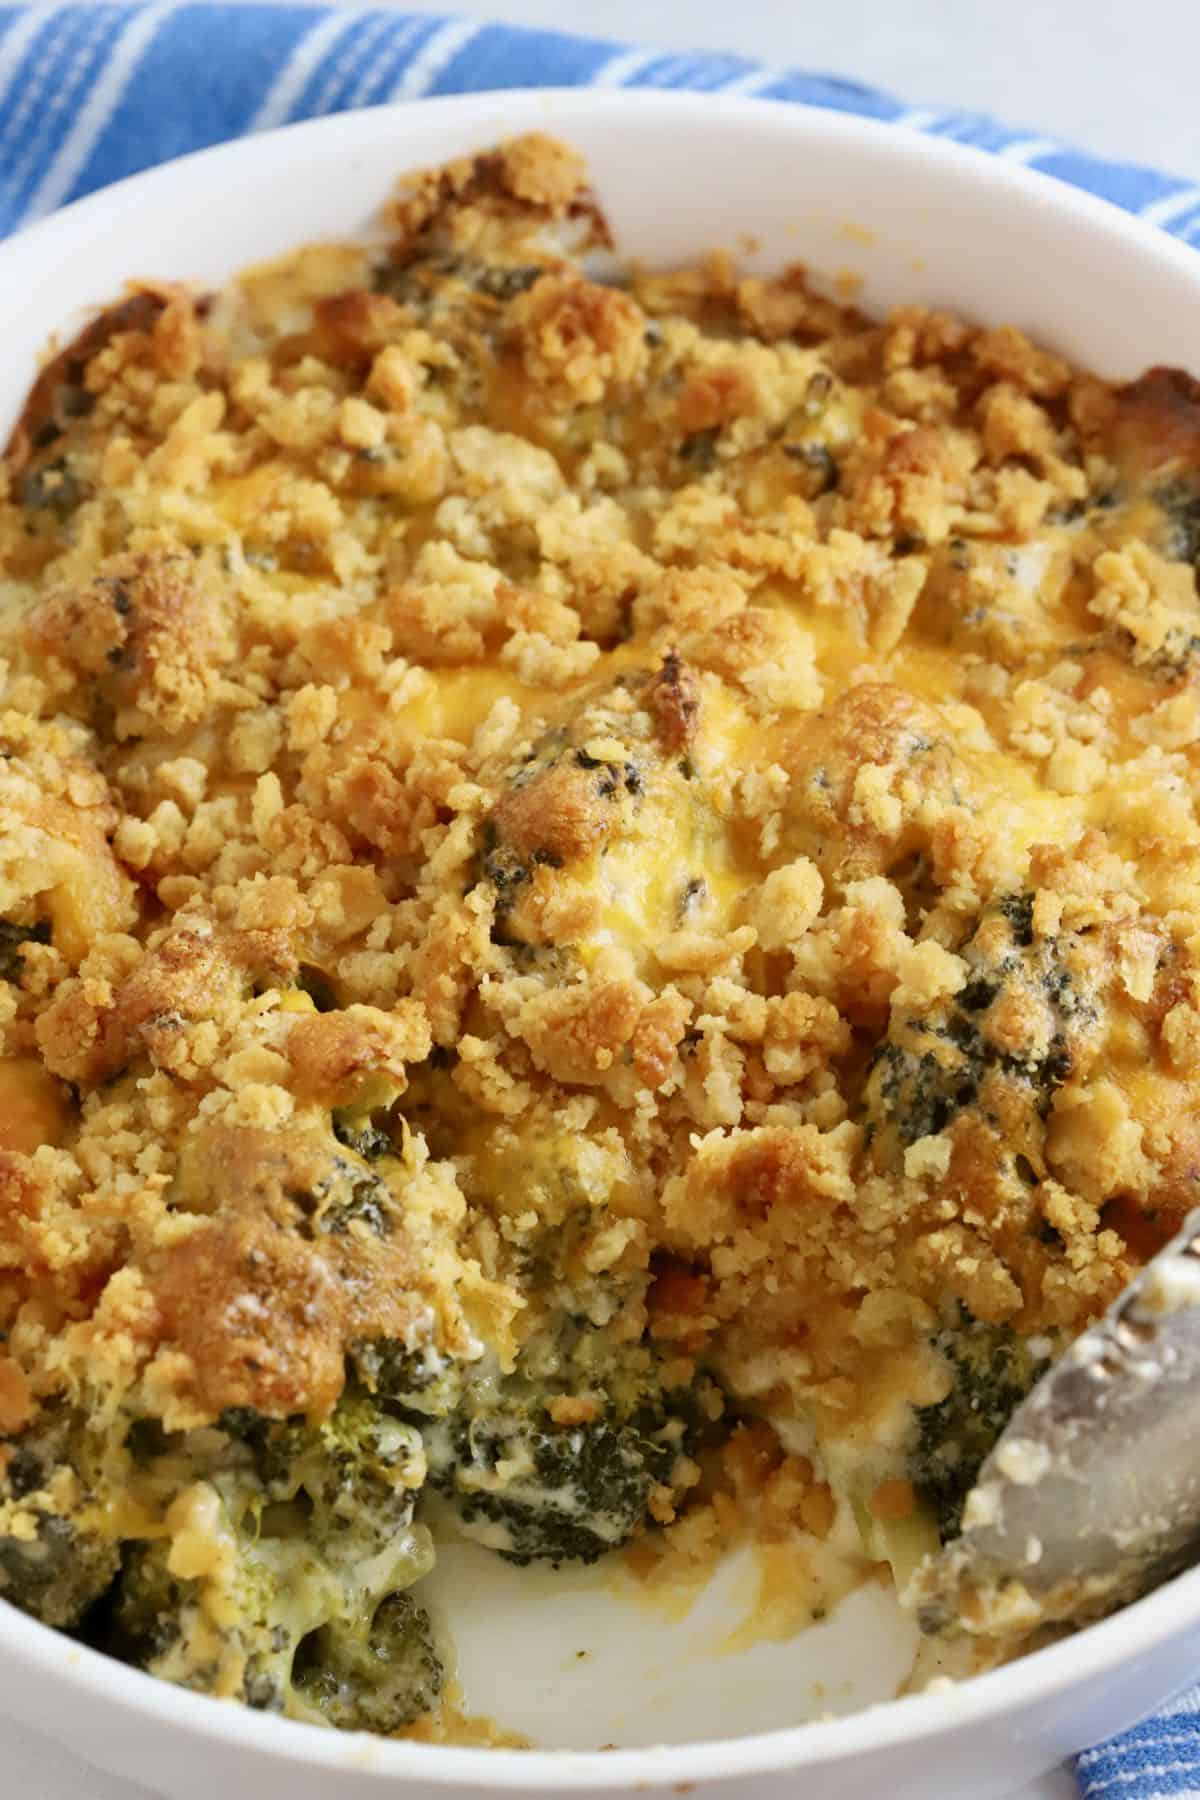 A white baking dish with broccoli casserole with a scoop taken out.